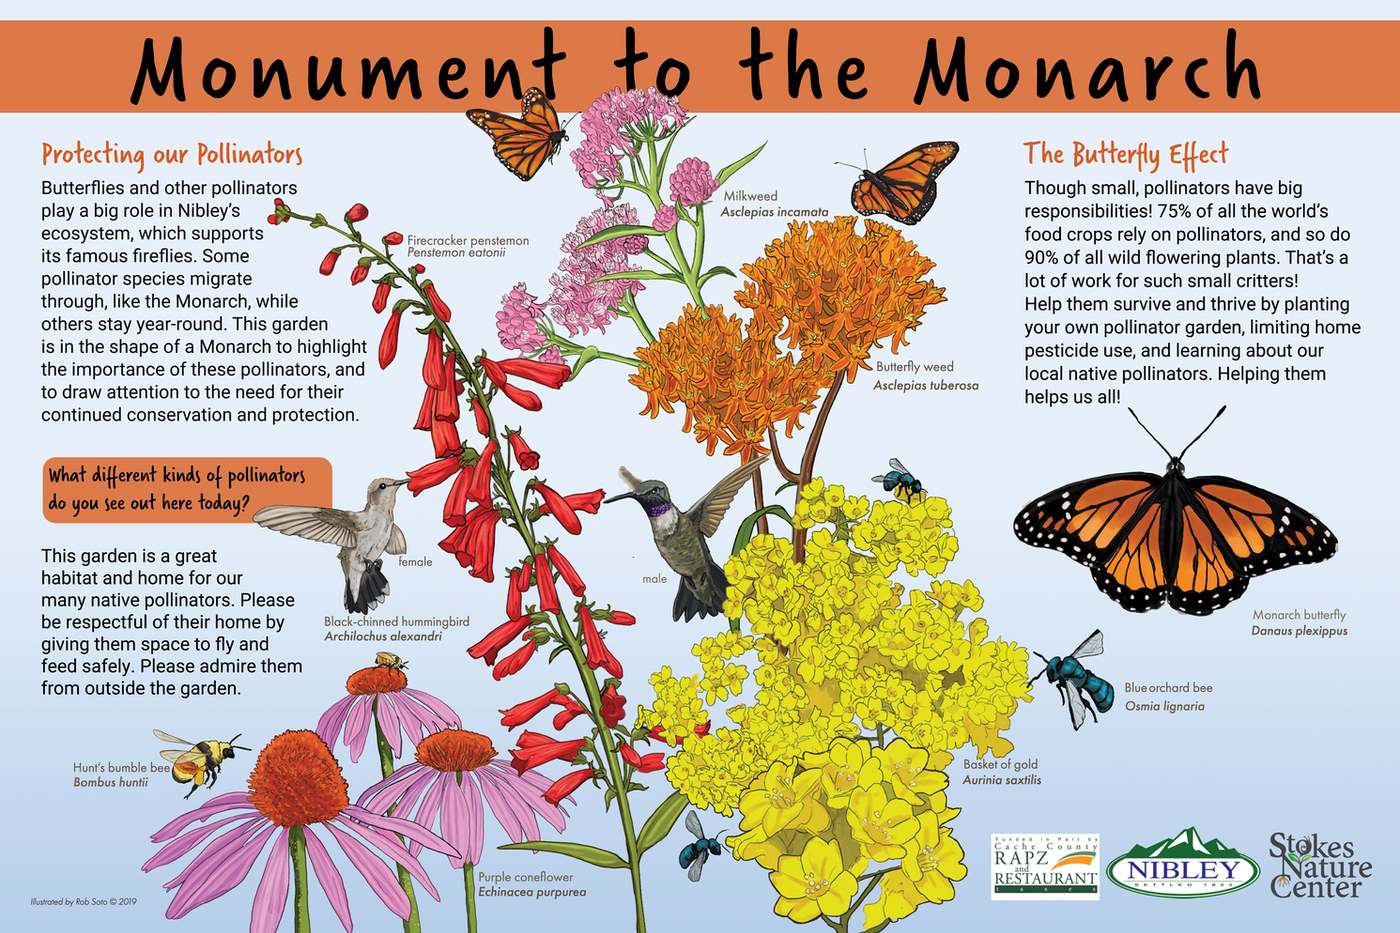 Monument to the Monarch